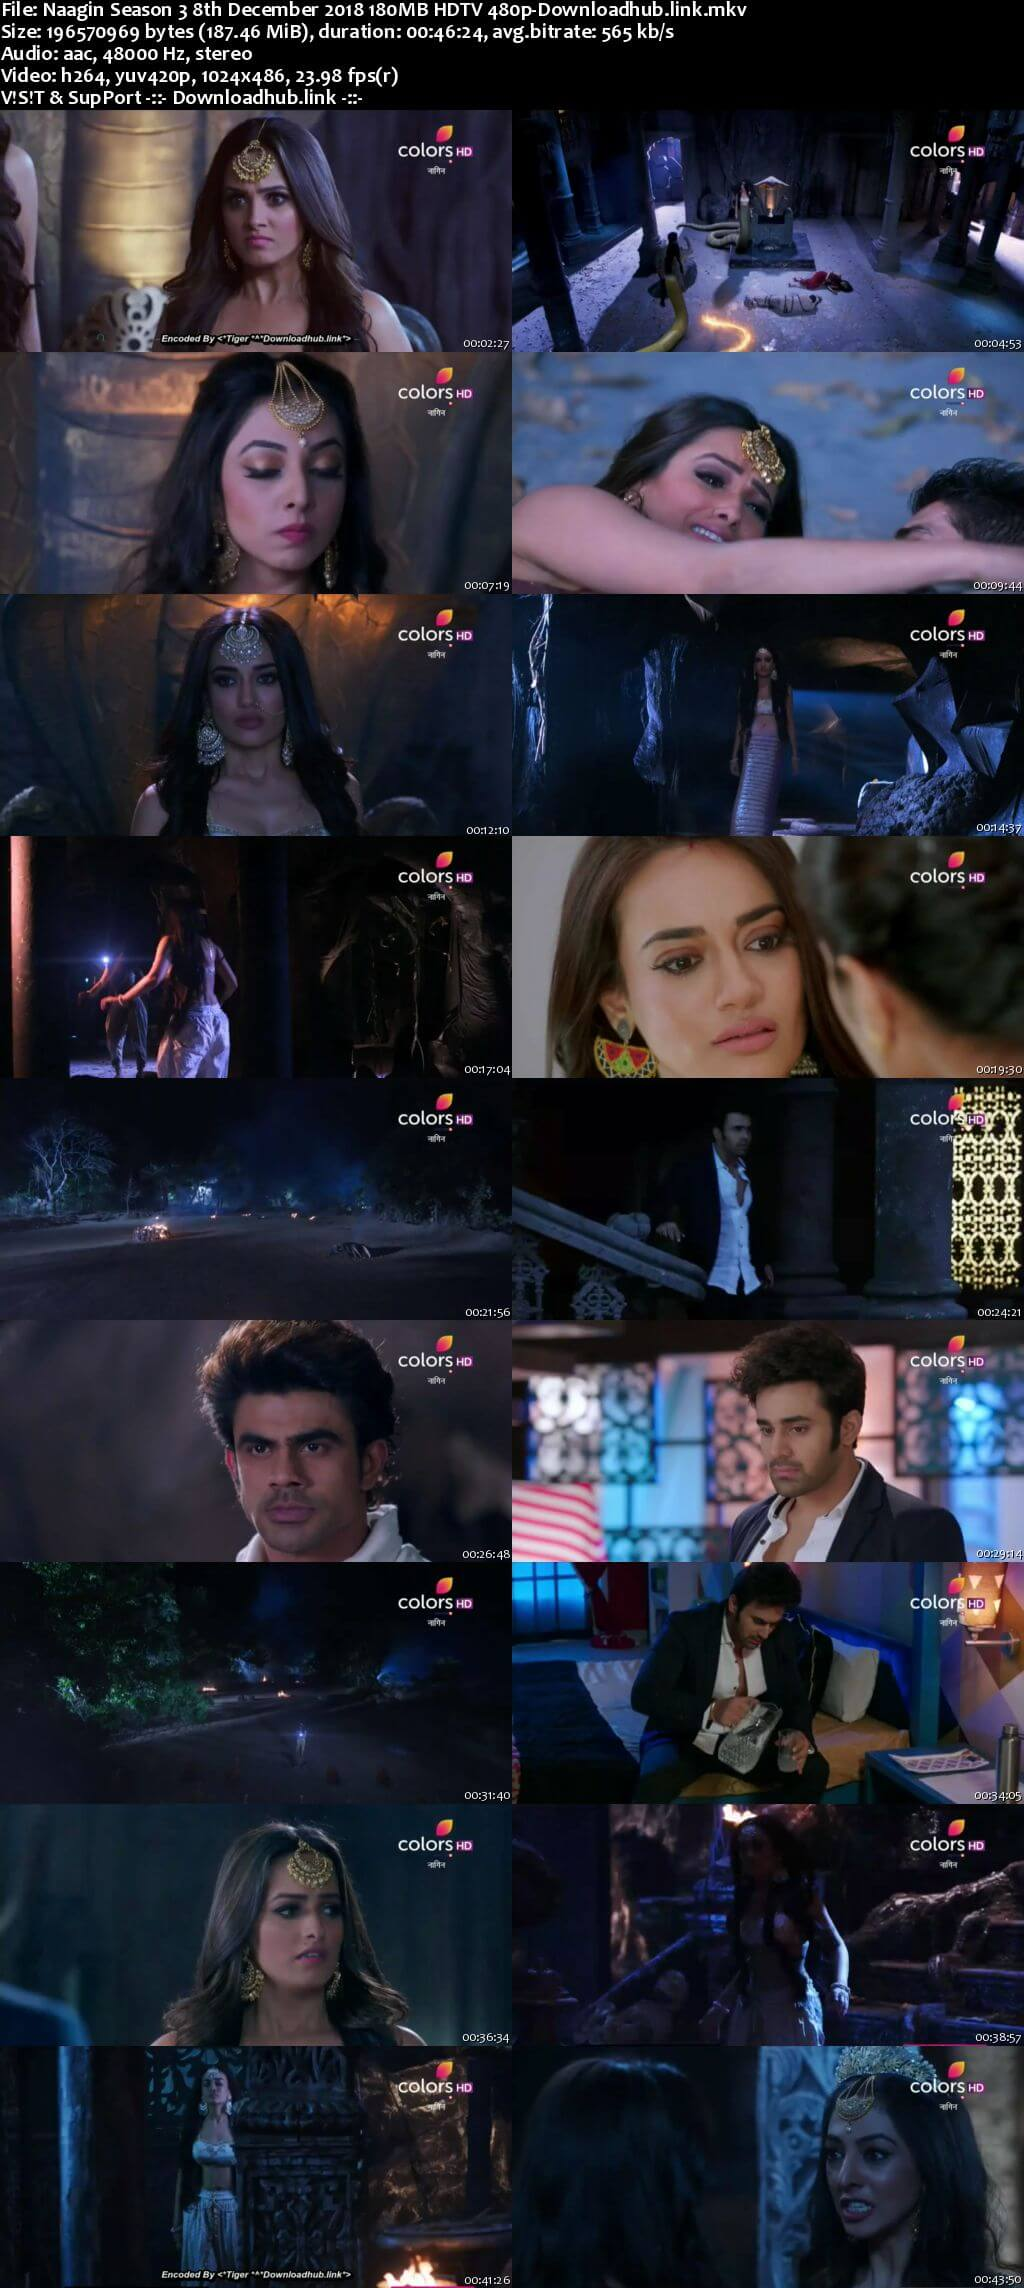 Naagin Season 3 08 December 2018 Episode 53 HDTV 480p